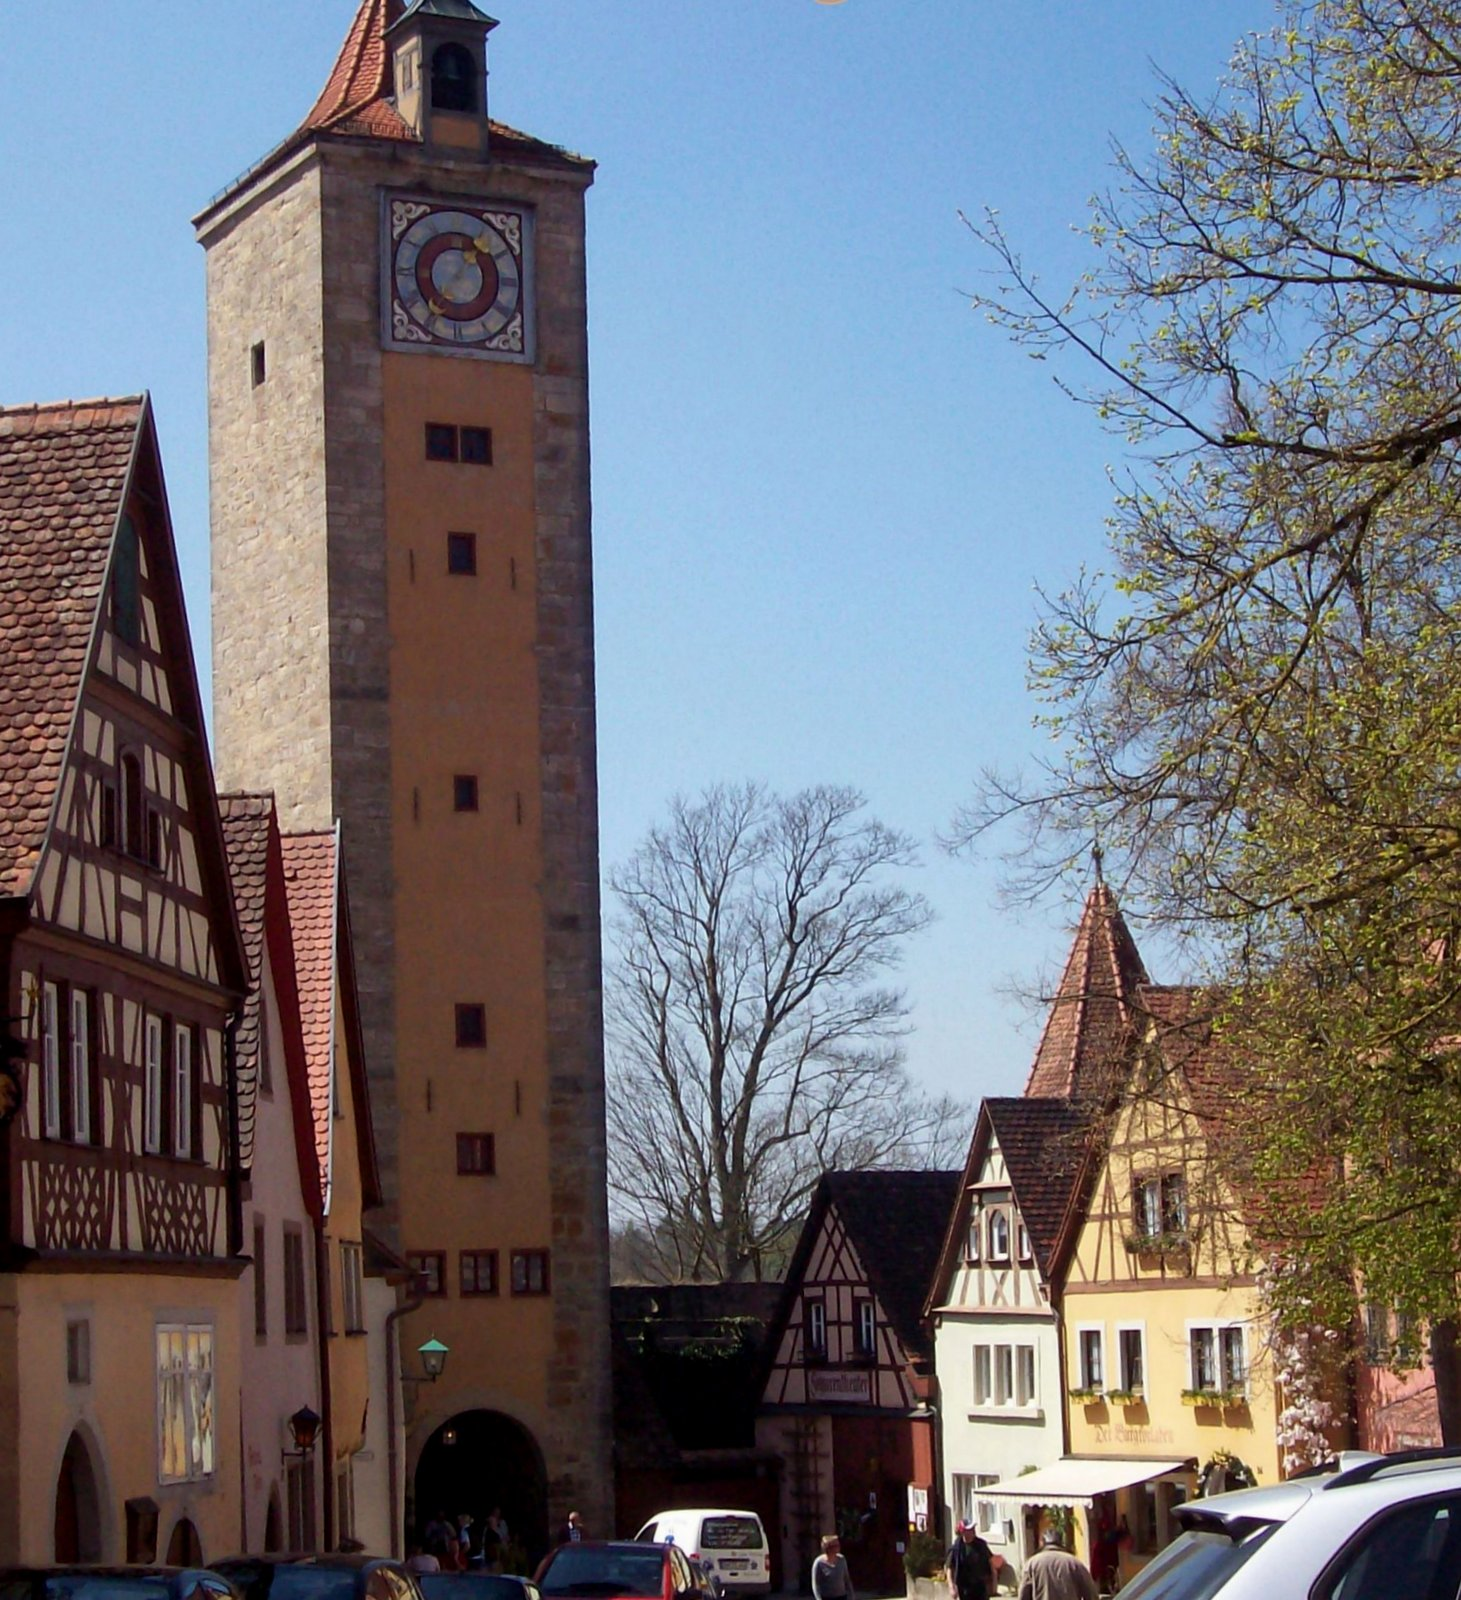 Burgtor Rothenburg